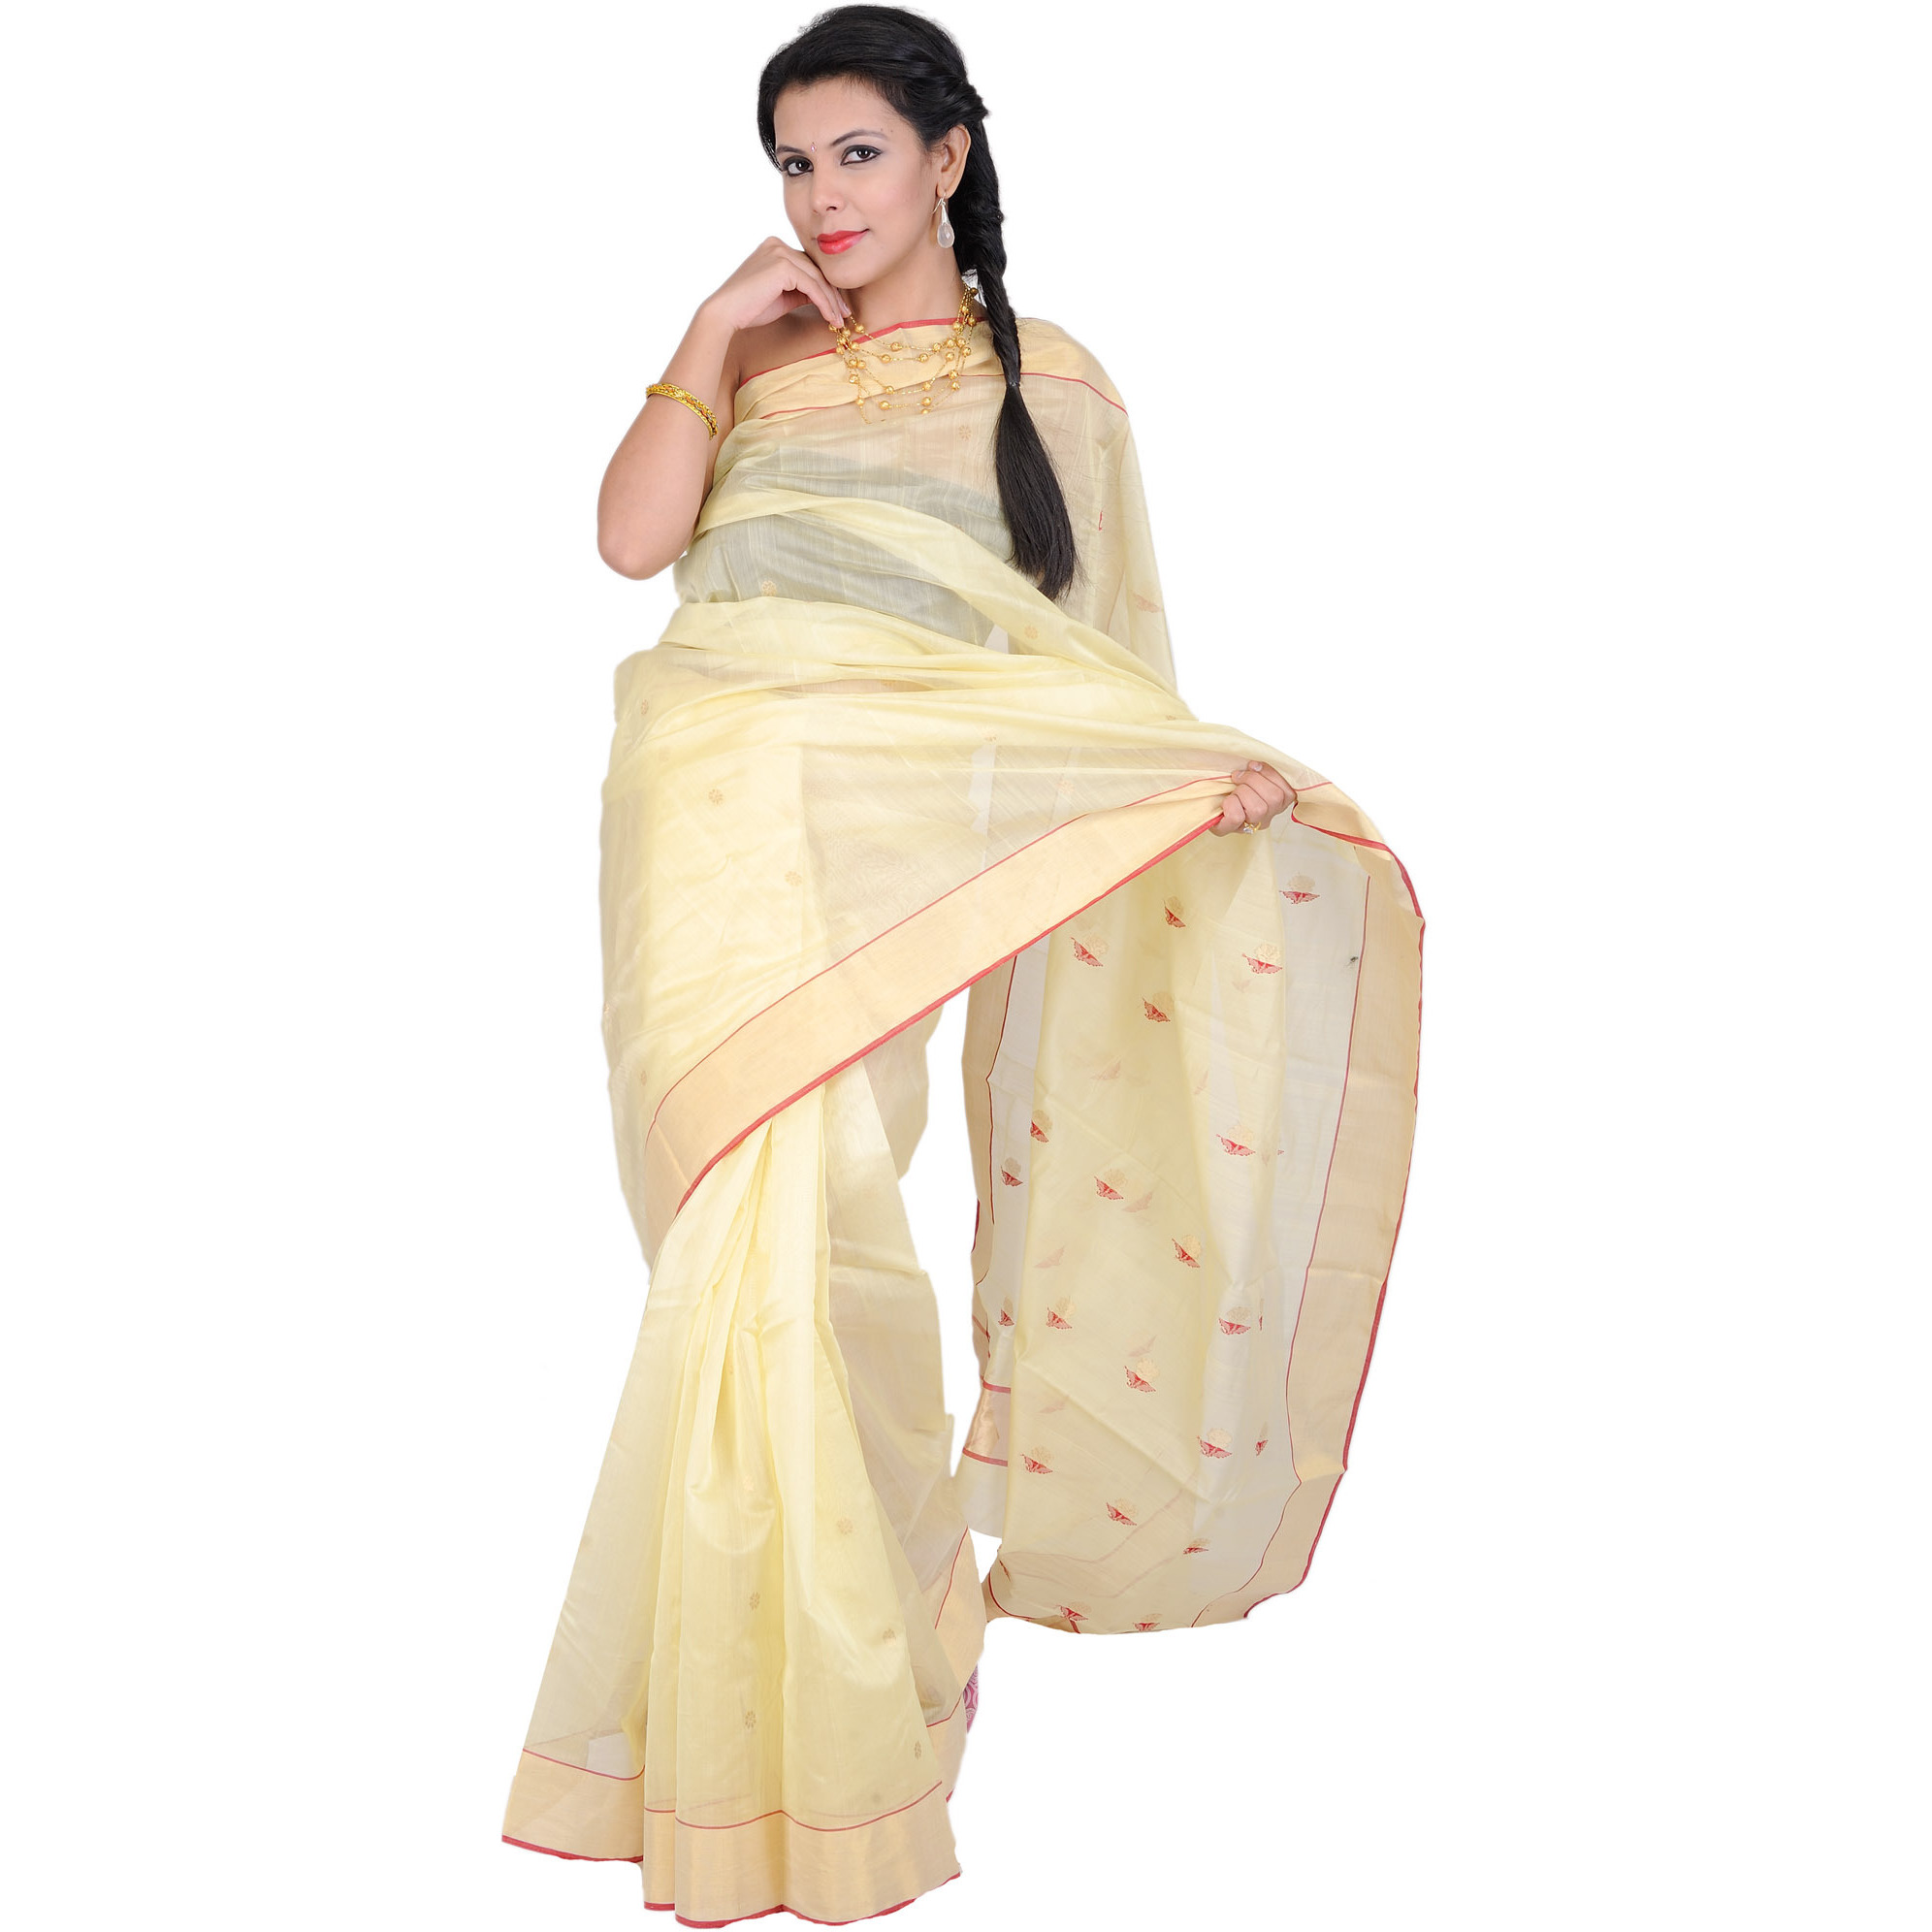 French-Vanilla Chanderi Sari with Zari Bootis on Aanchal and Golden Border